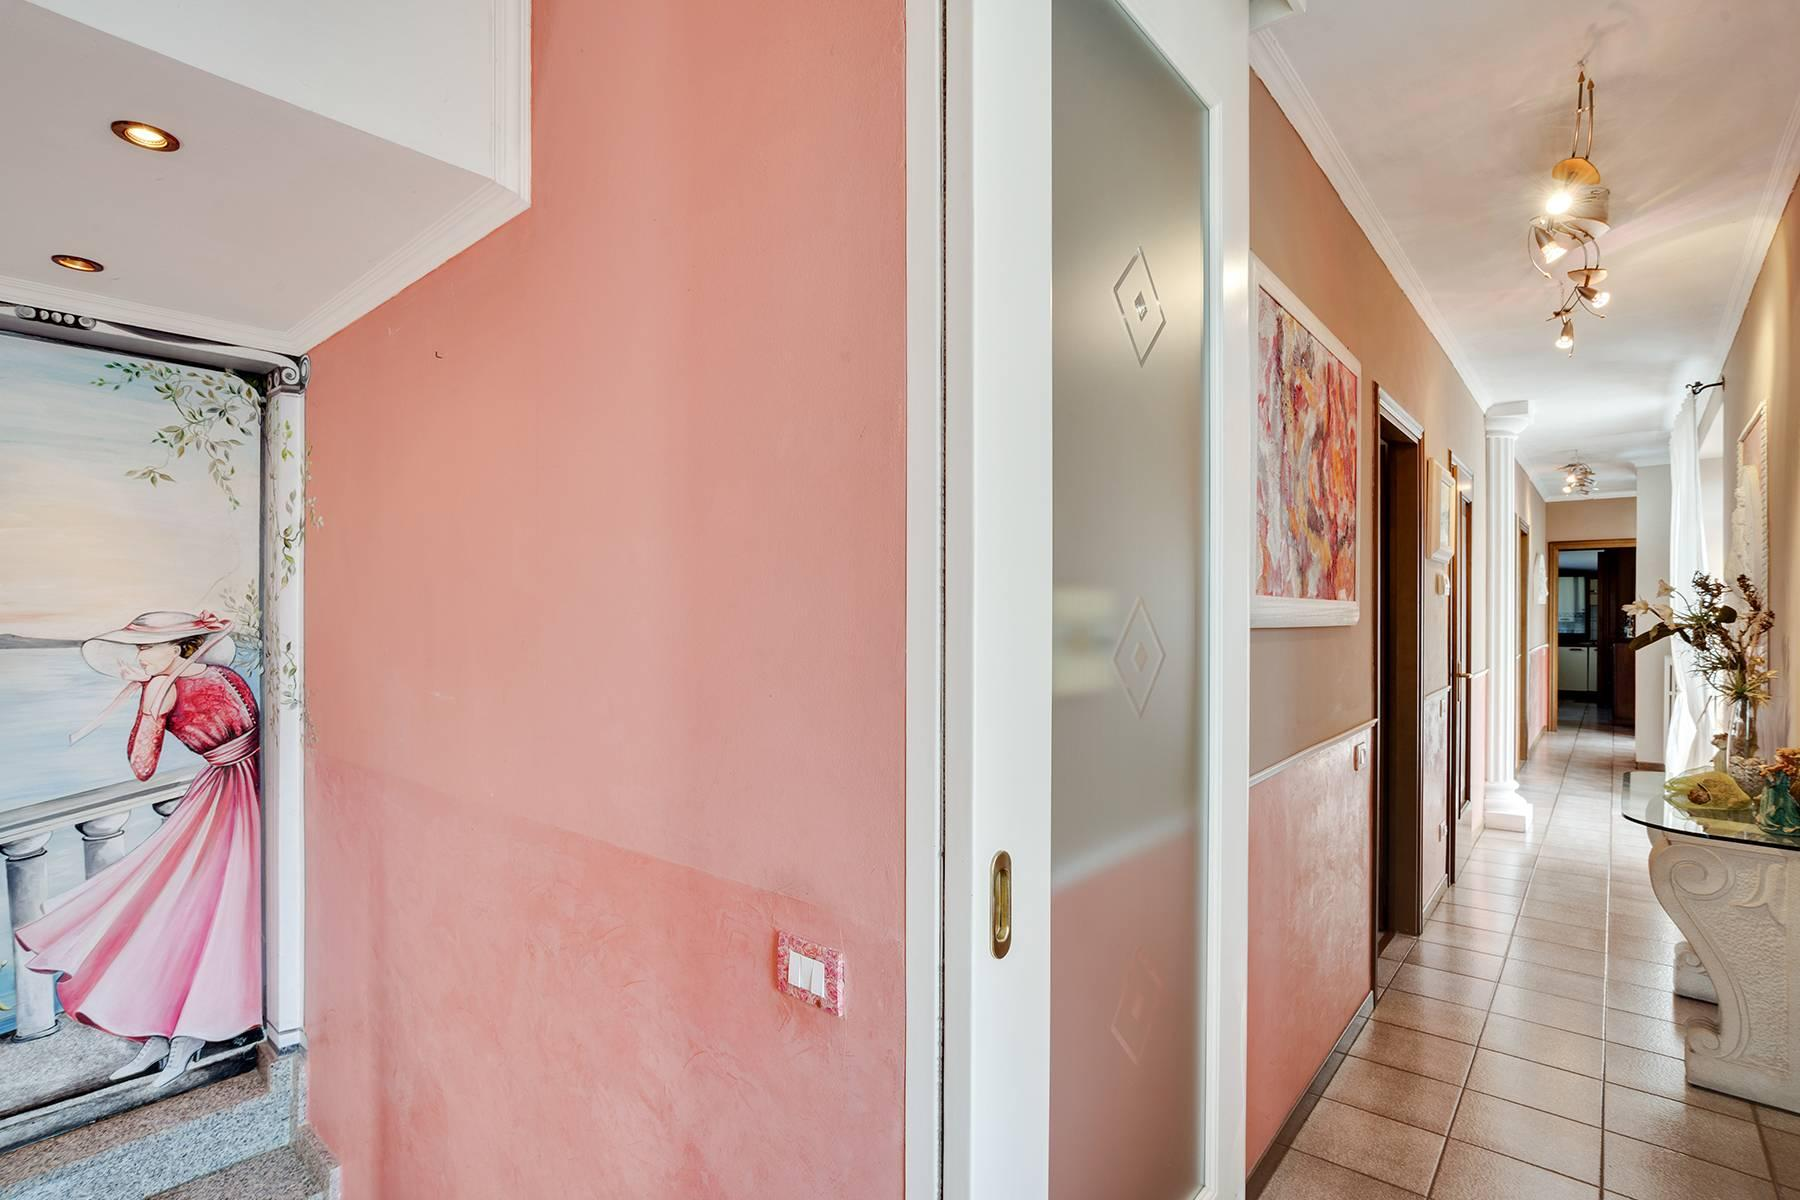 Independent villa a few steps from the heart of Arona - 15